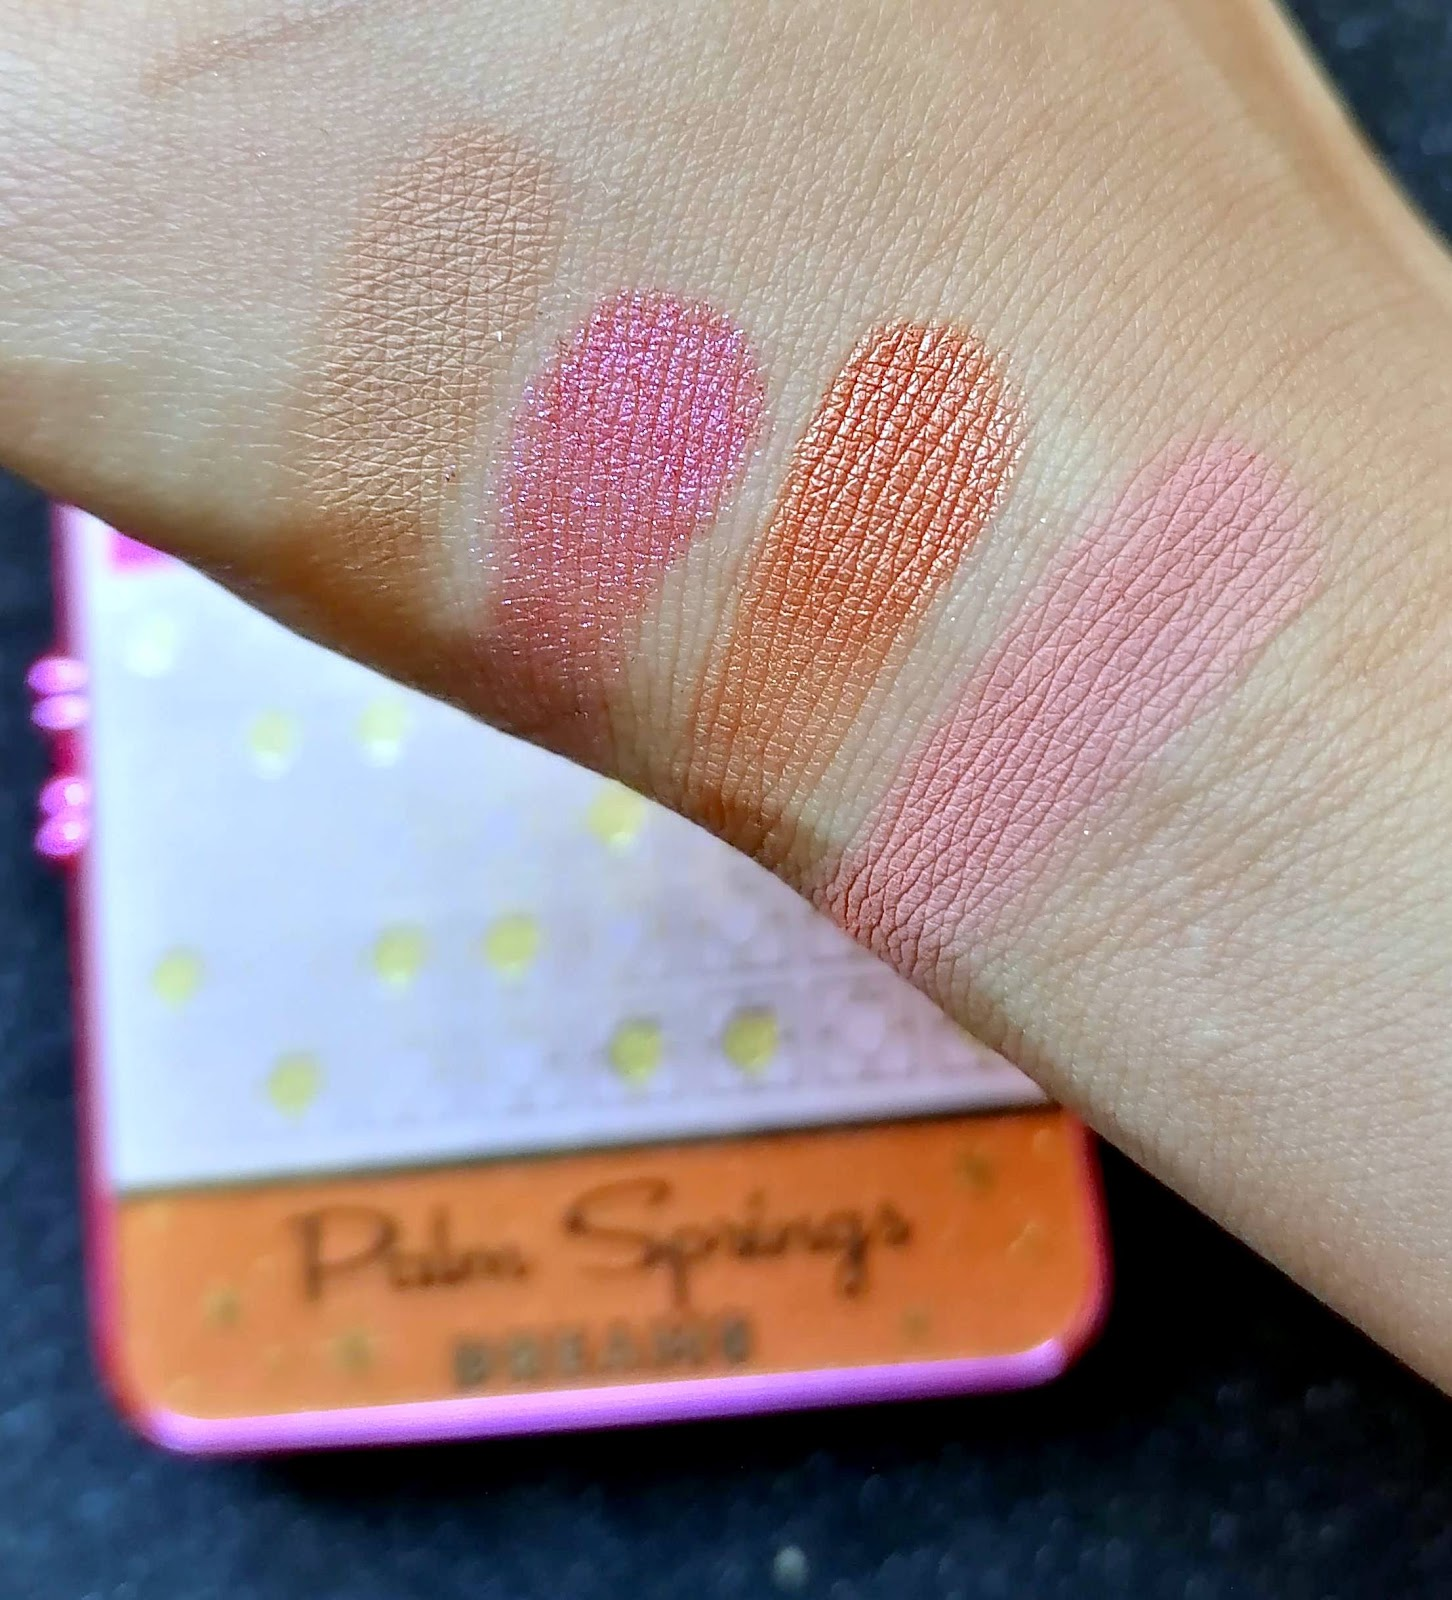 TOO FACED > Palm Springs Dreams Cocktail Party 🌴 swatch and make up!